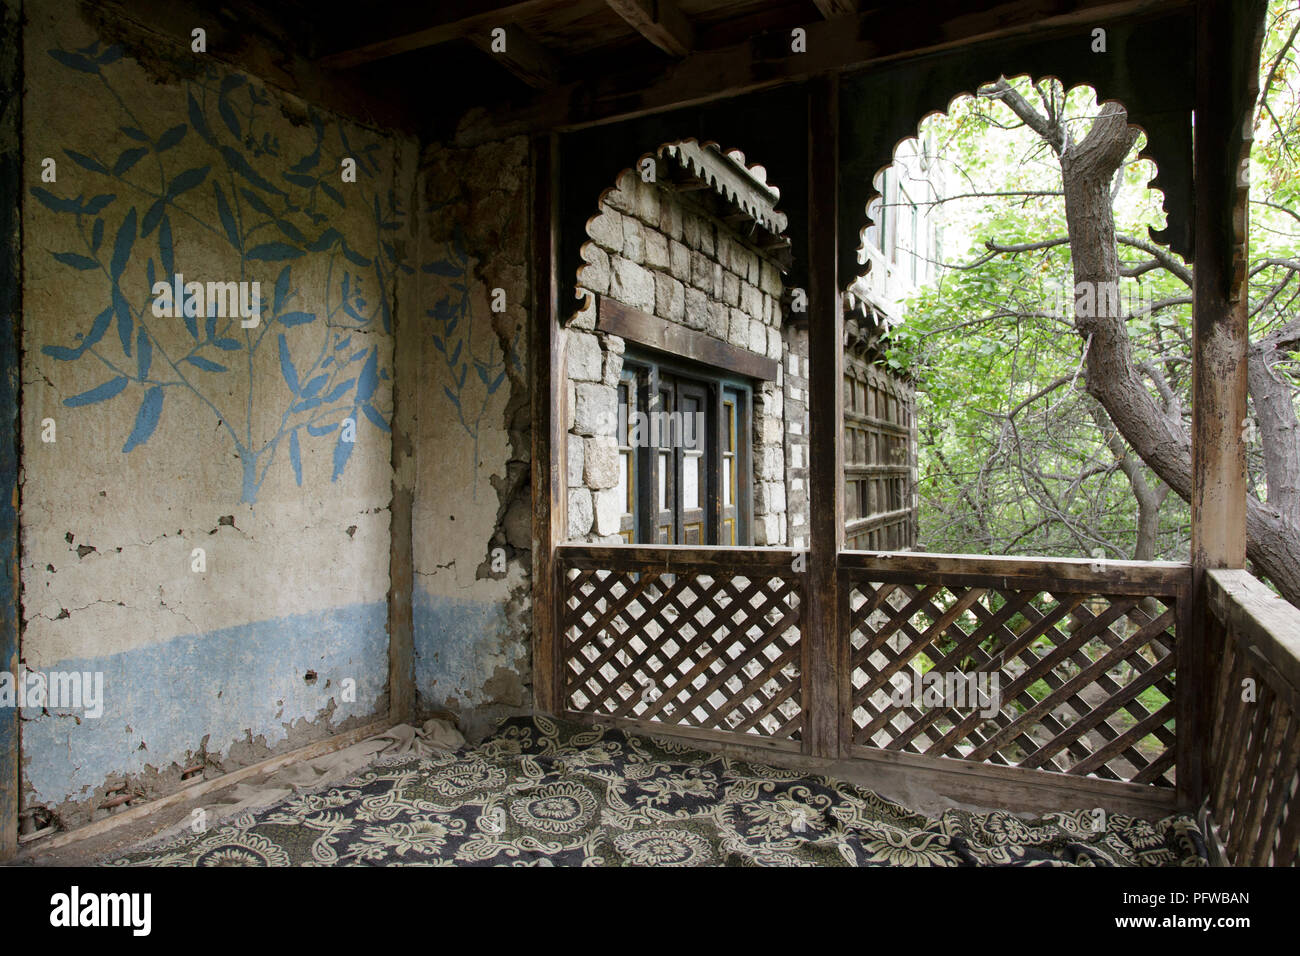 A wooden veranda at Khan's Palace, Turtuk village, Shyok valley, Ladakh, Jammu & Kashmir, India - Stock Image